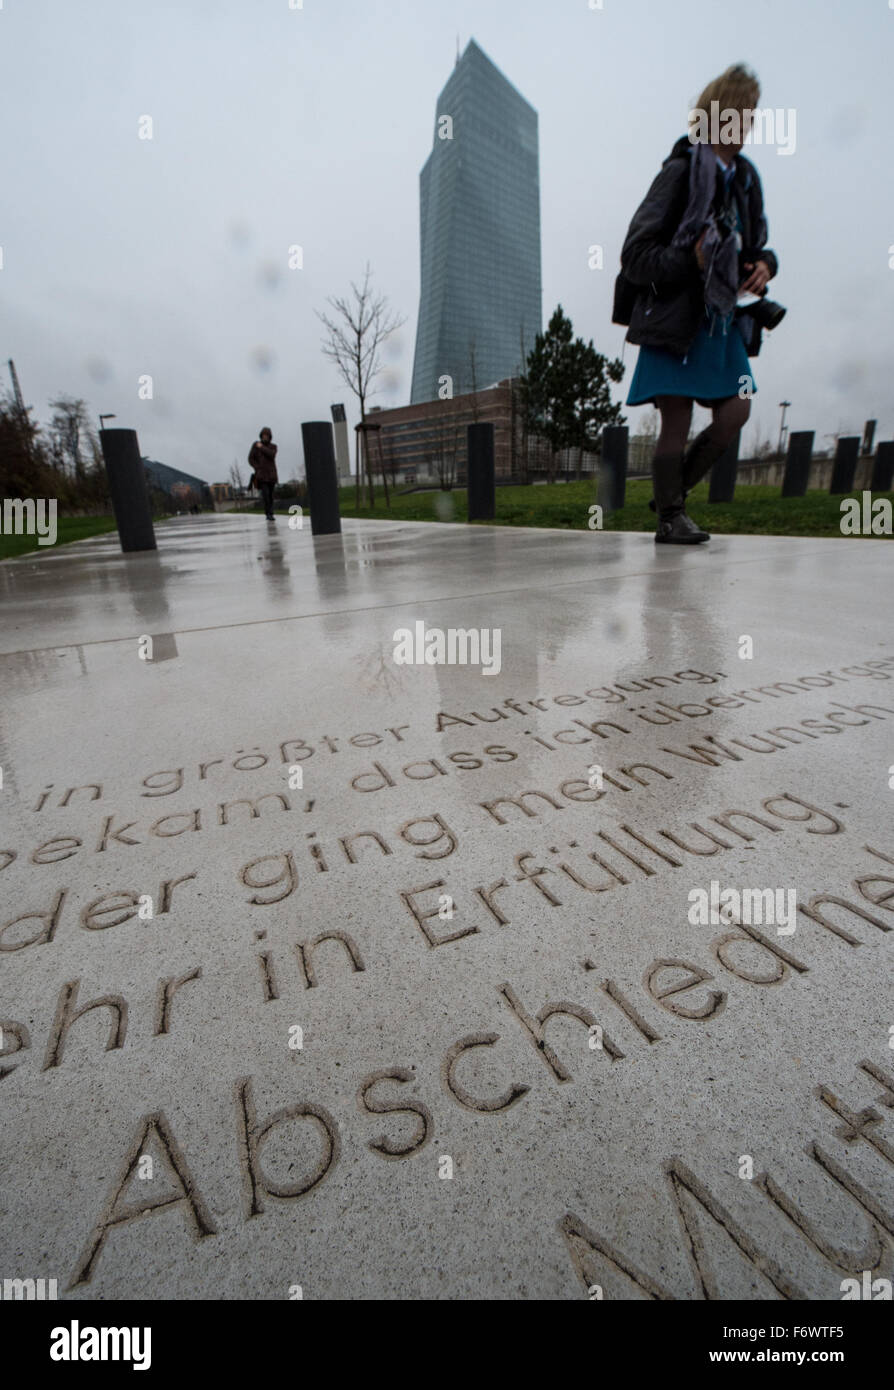 """The word """"Abschied"""" (Farewell) can be seen on a memorial plaque in the outisde area of the newly opened Holocaust Stock Photo"""